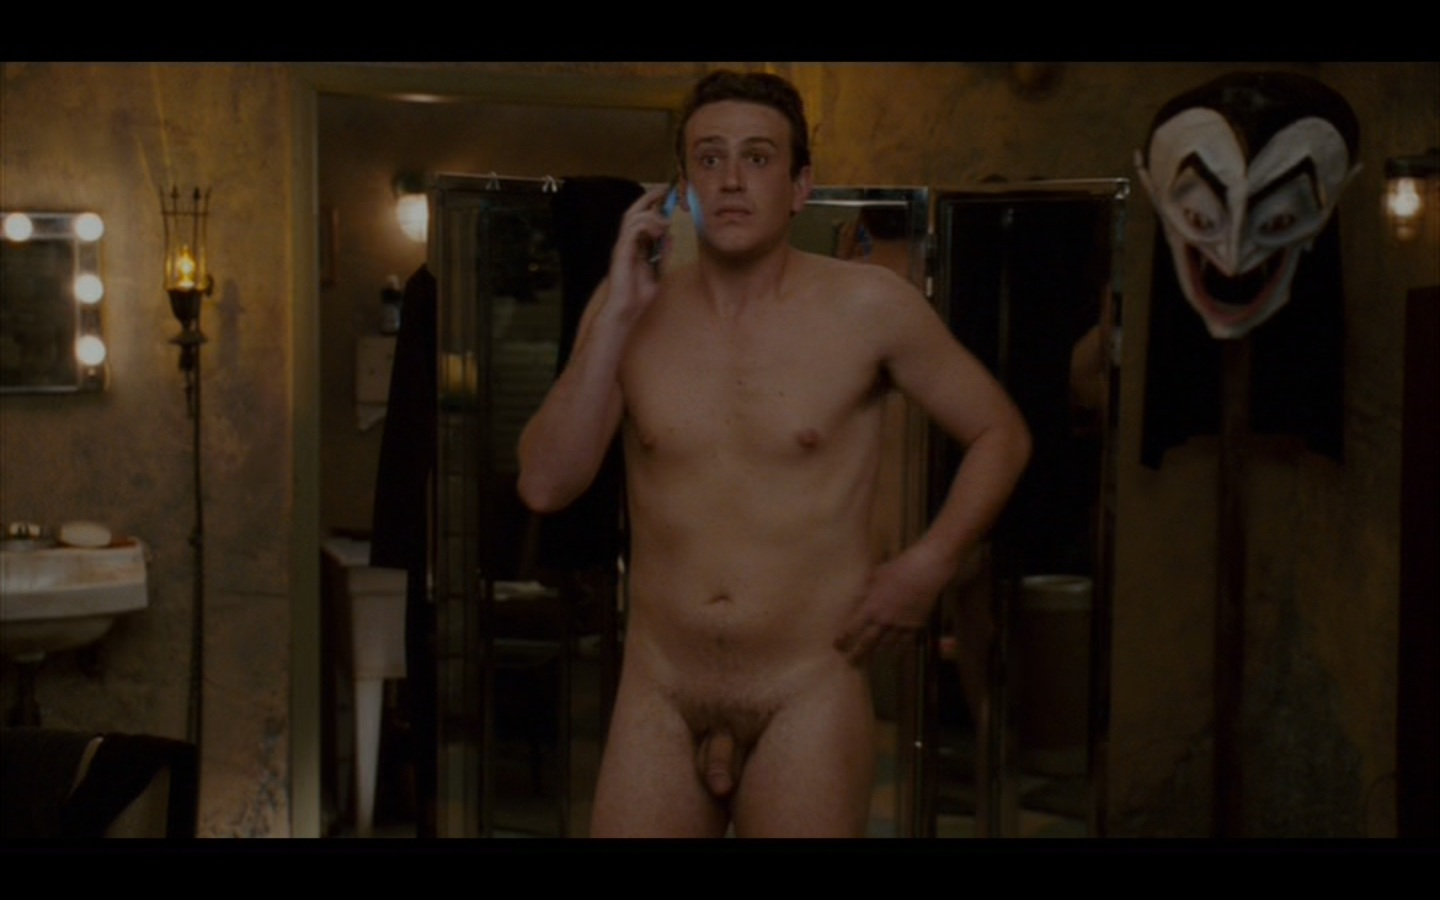 Male movie actor naked #13